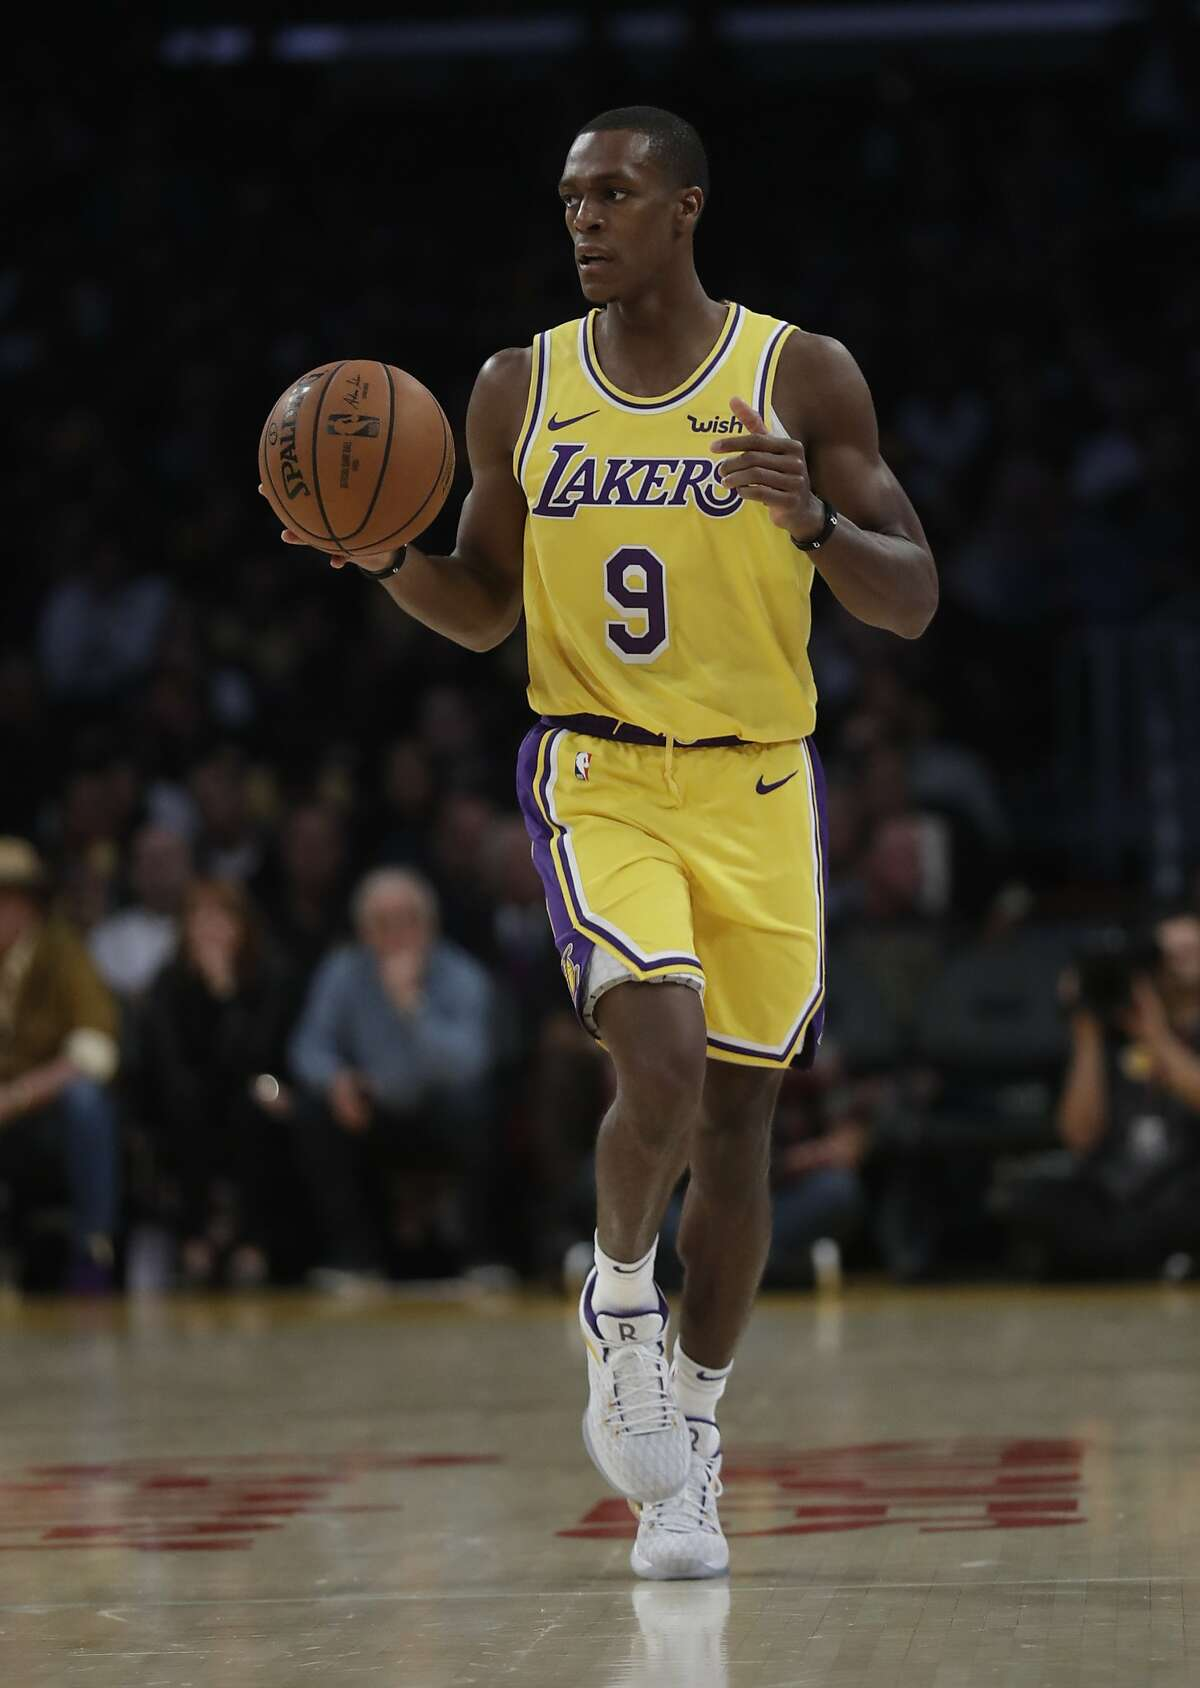 Los Angeles Lakers' Rajon Rondo during the second half of an NBA basketball game against the Houston Rockets Saturday, Oct. 20, 2018, in Los Angeles. (AP Photo/Marcio Jose Sanchez)